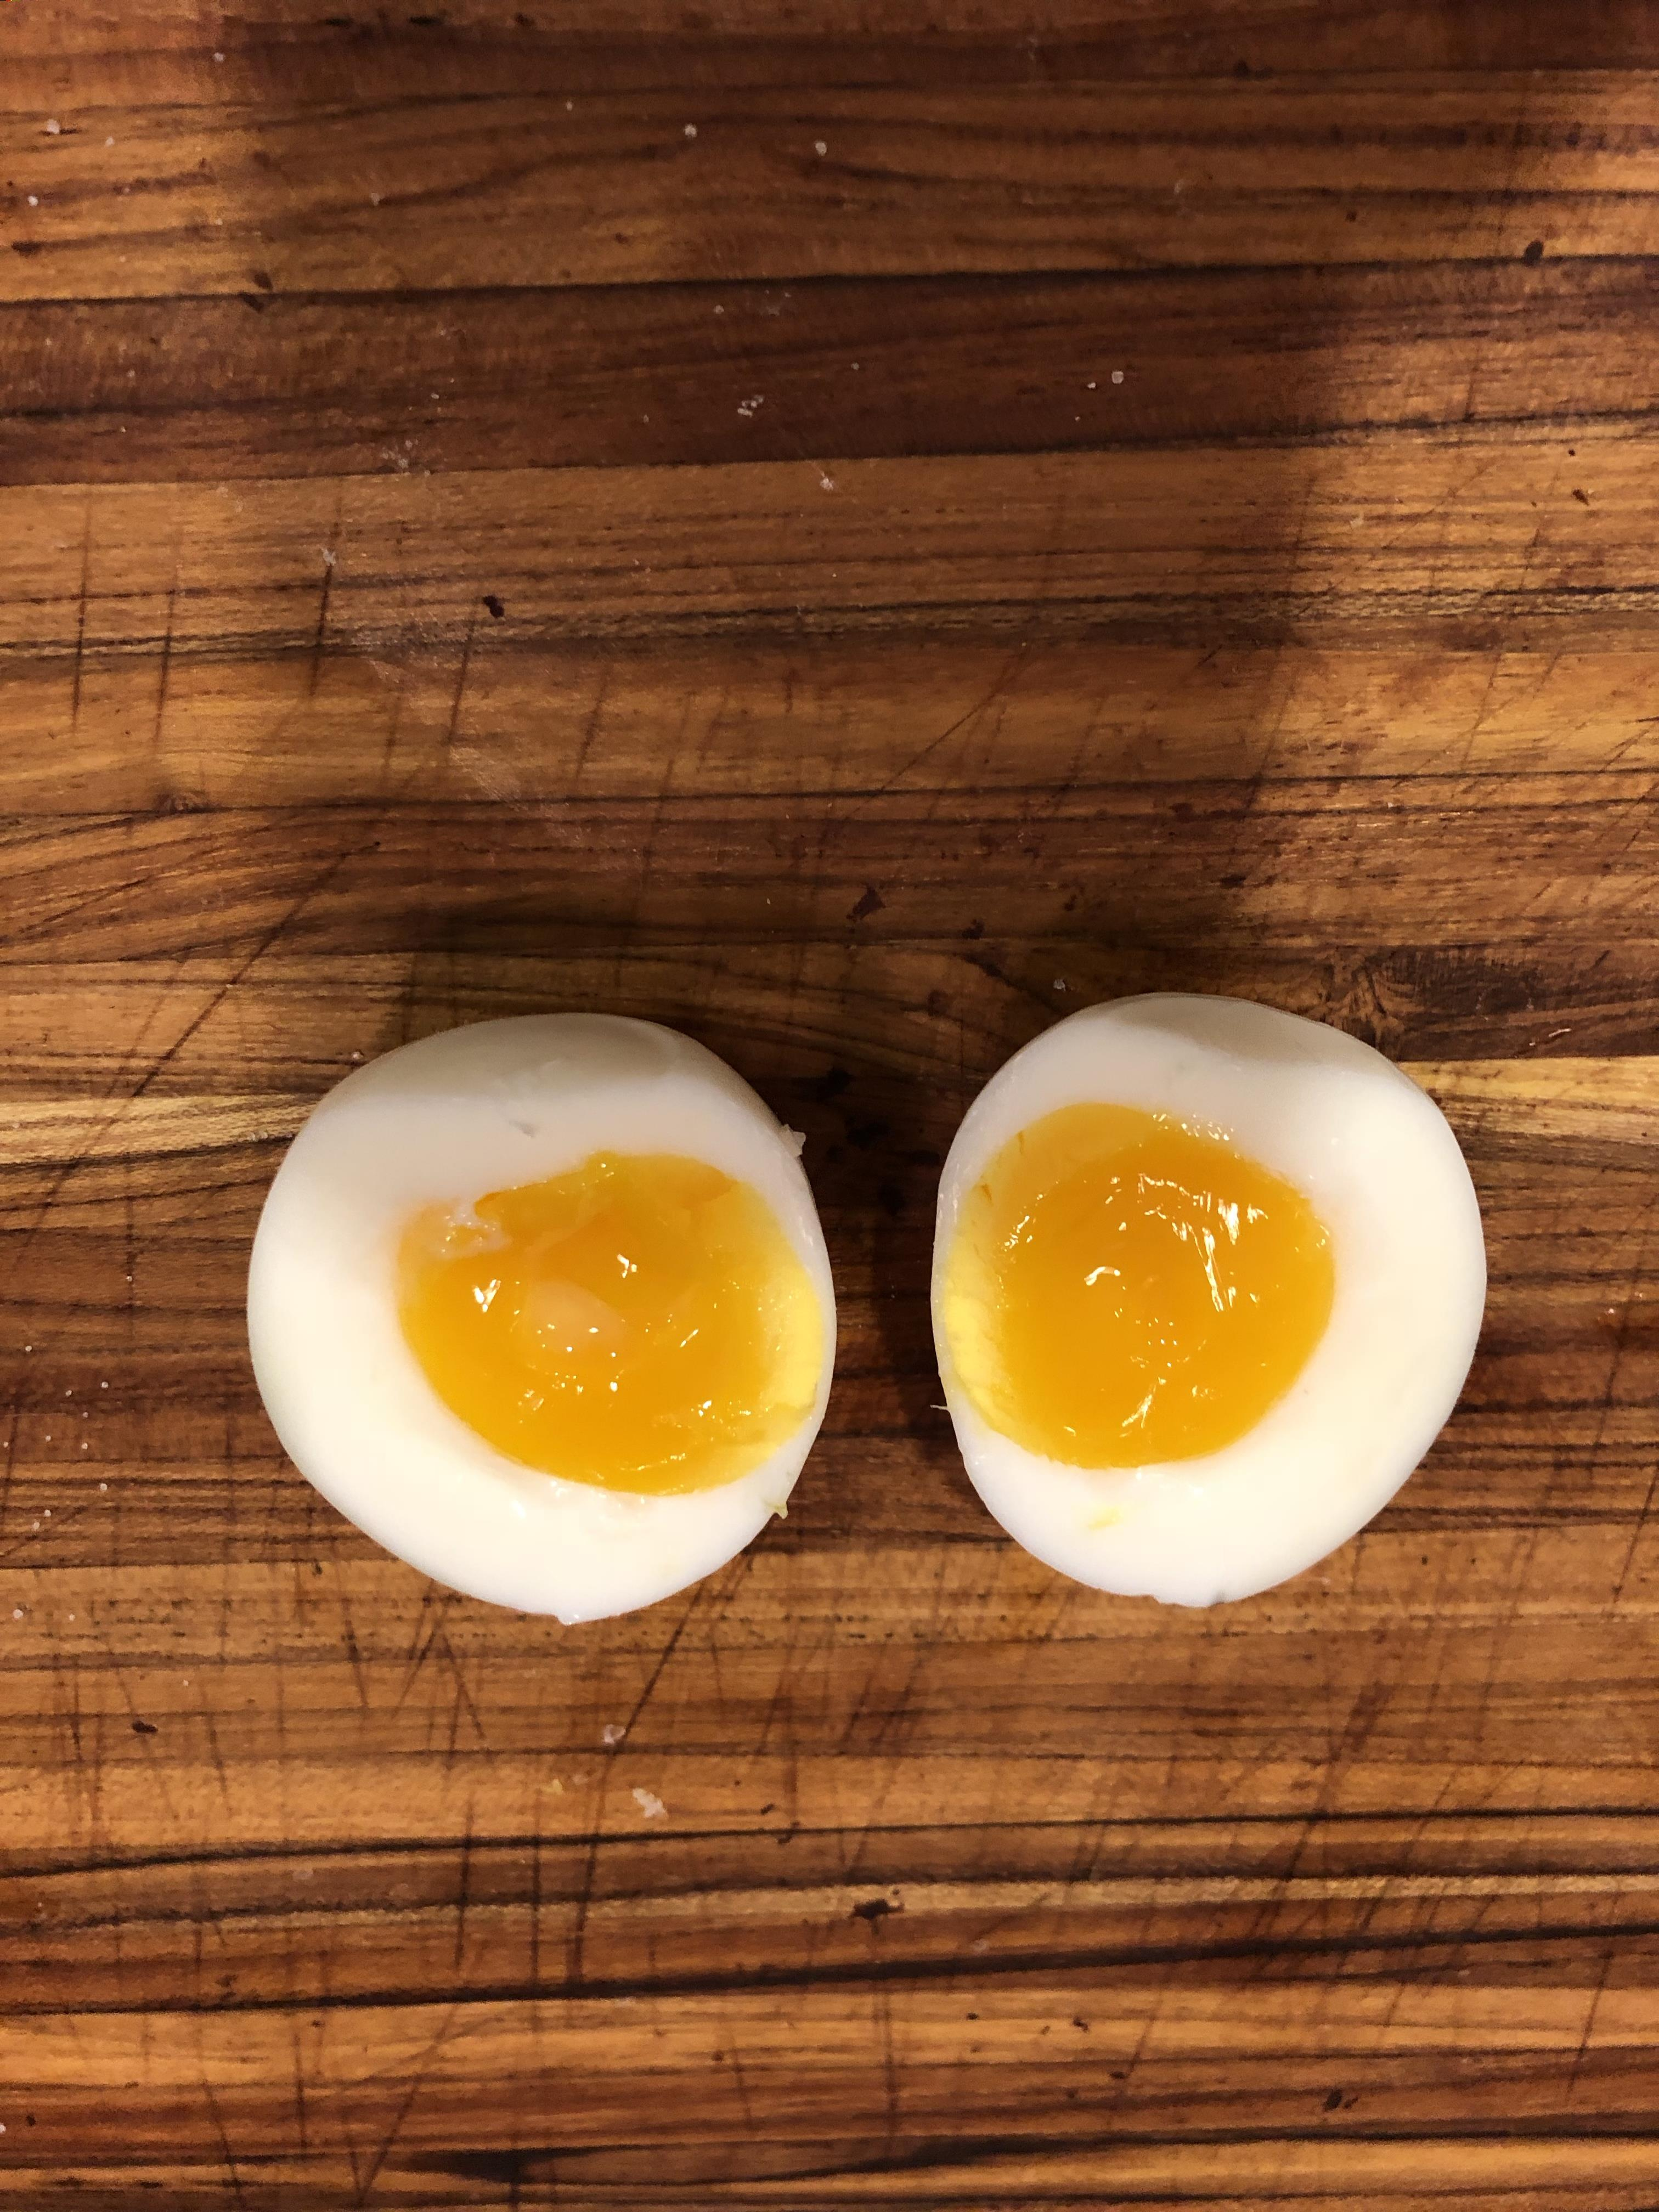 Sherry's Perfect Sous Vide Eggs